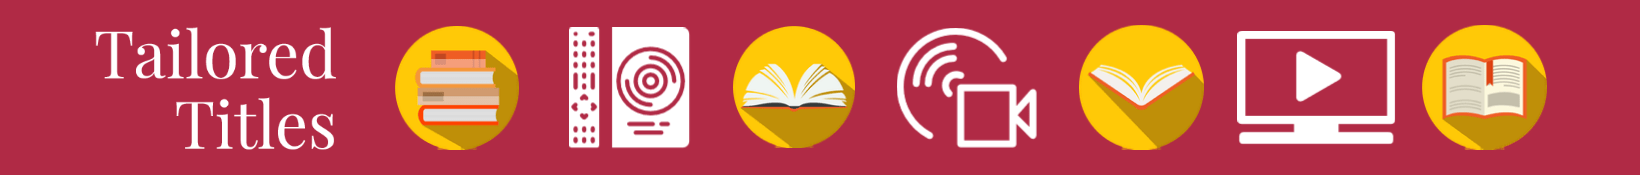 Graphic that reads Tailored Titles and shows icons of books and movie formats